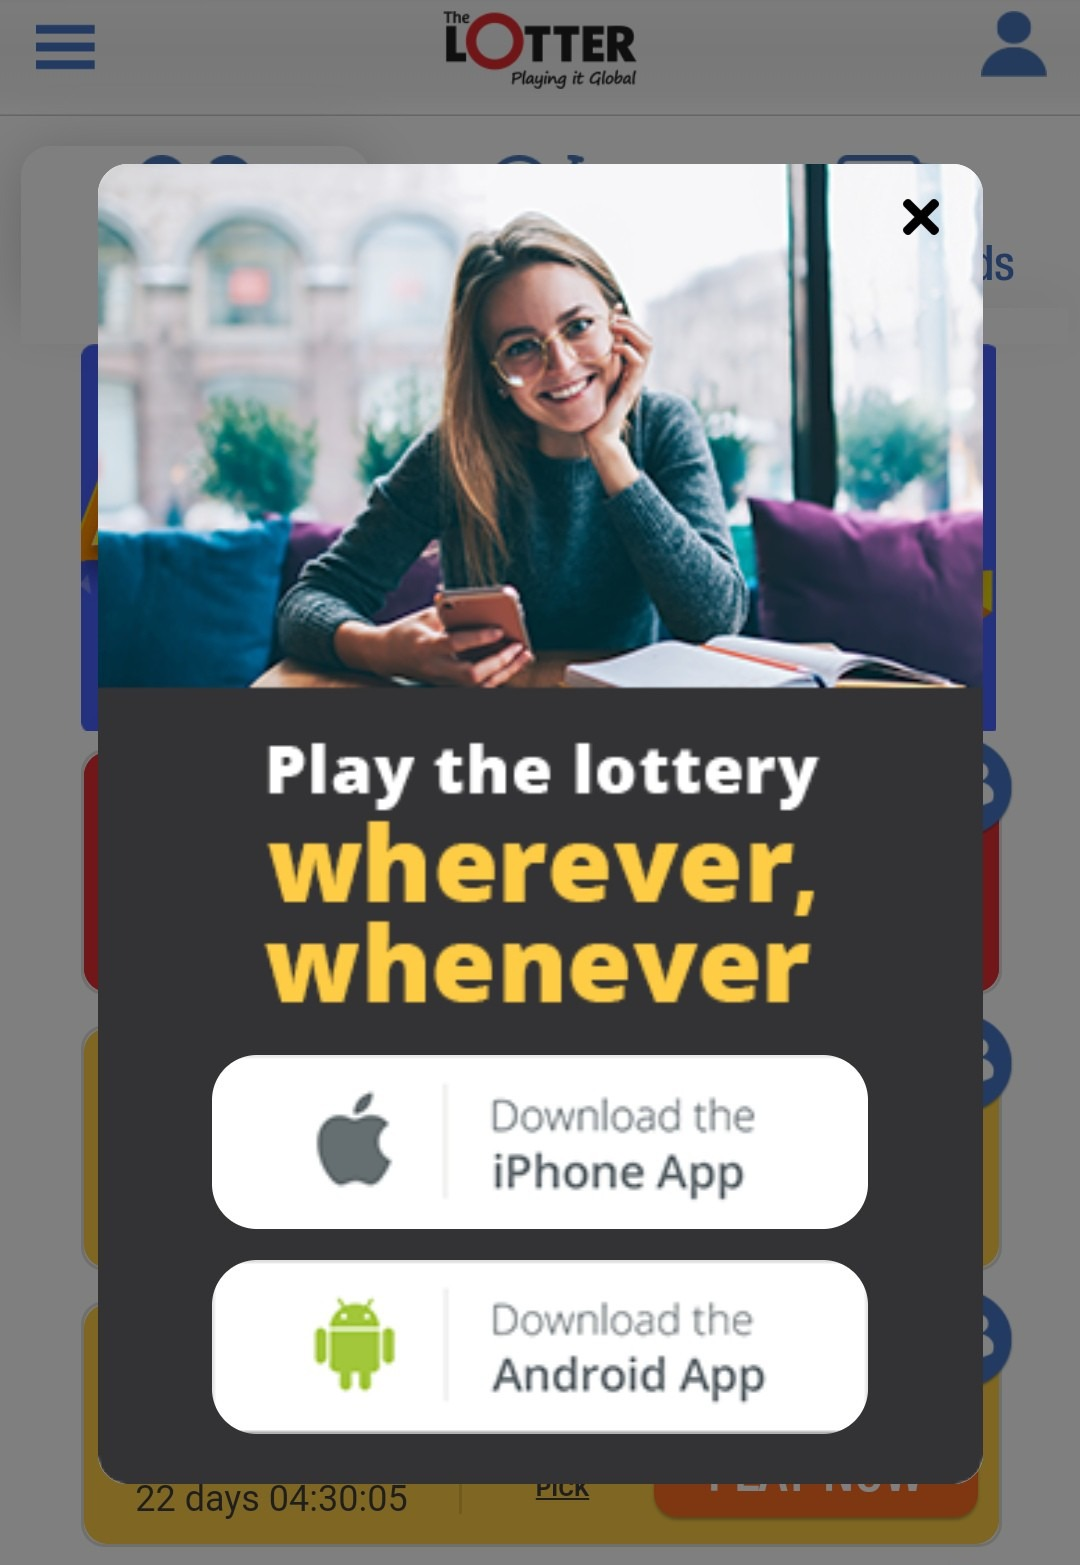 TheLotter app